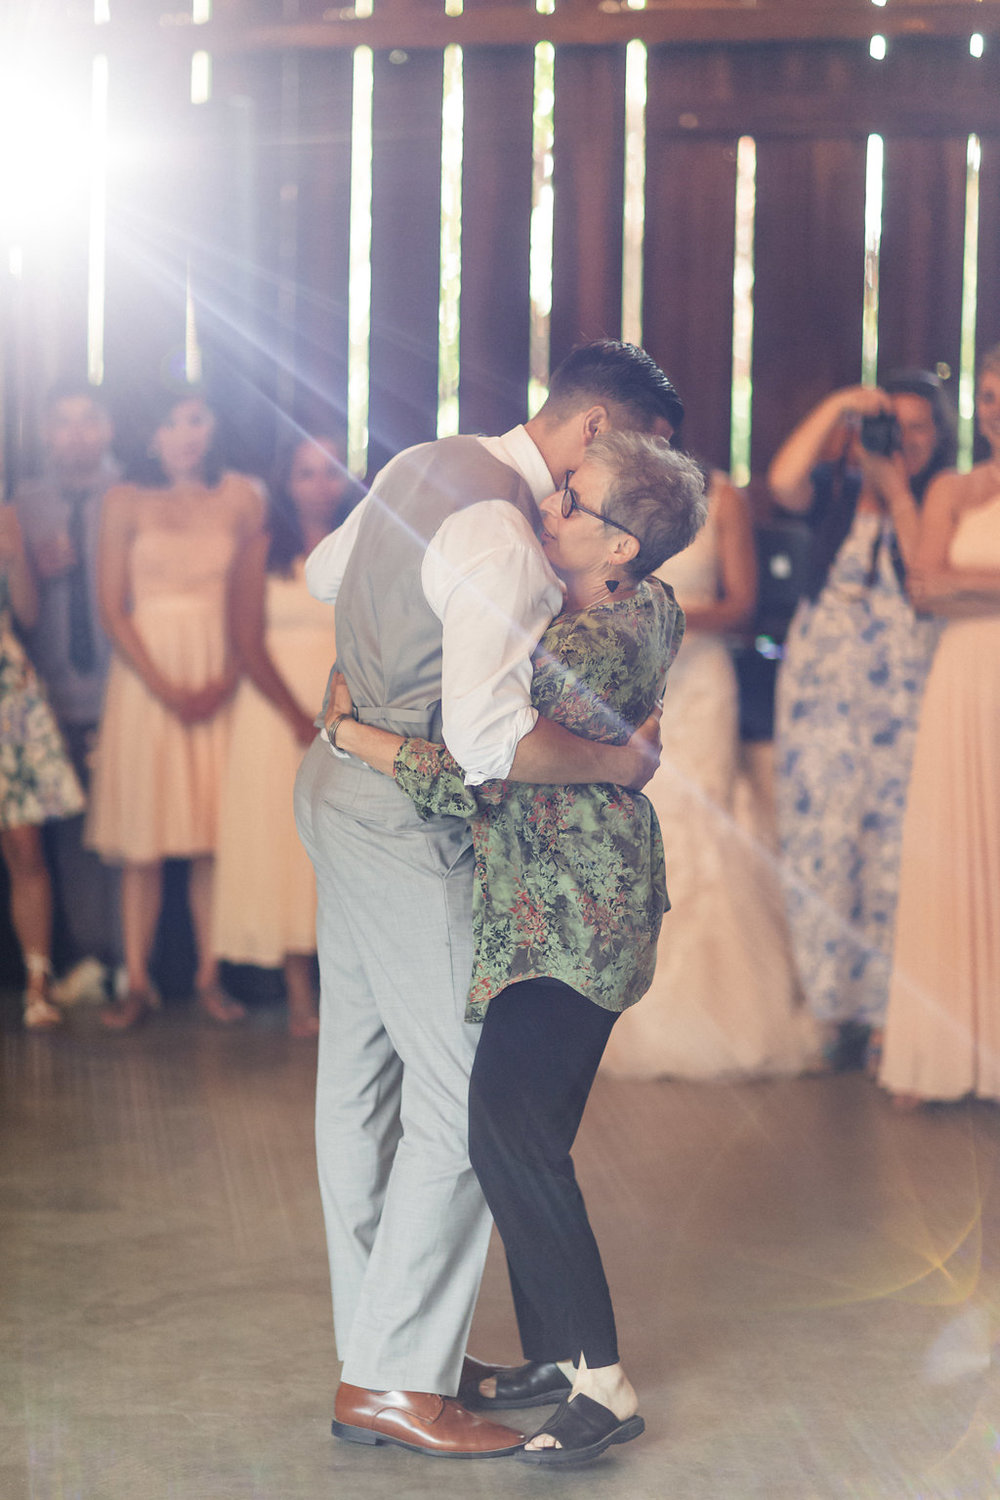 Rus-Farm-Mother-Son-Dance-Wedding-Barn.jpg